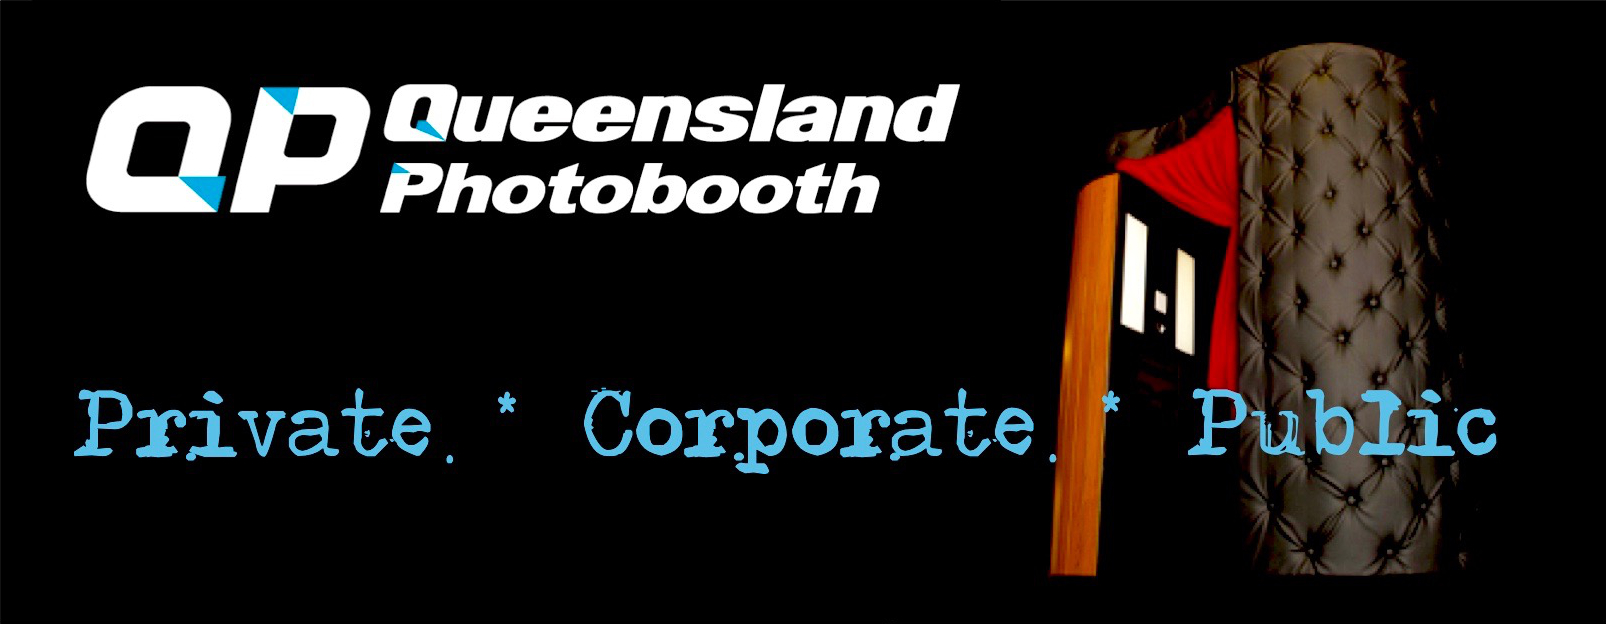 Queensland Photobooth